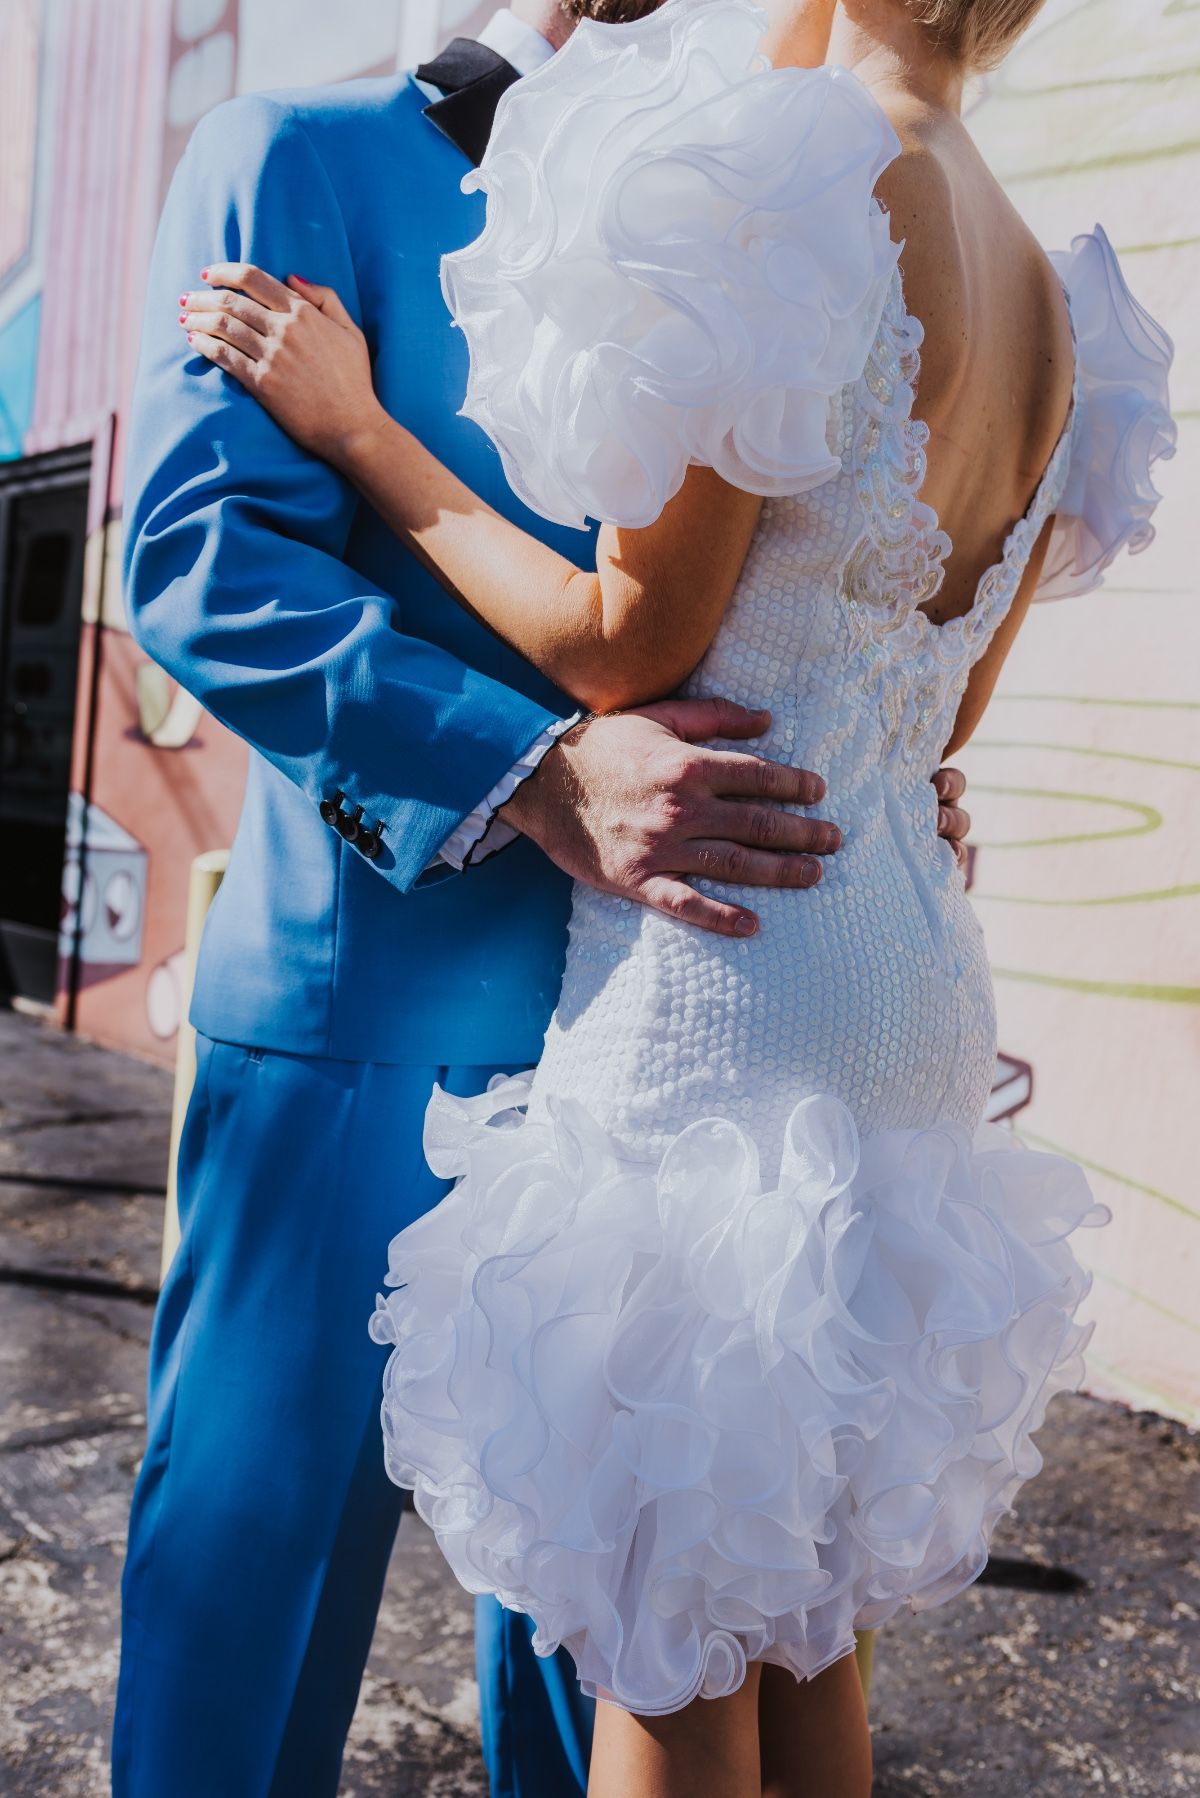 alex_and_gretchen_costume_wedding_of_the